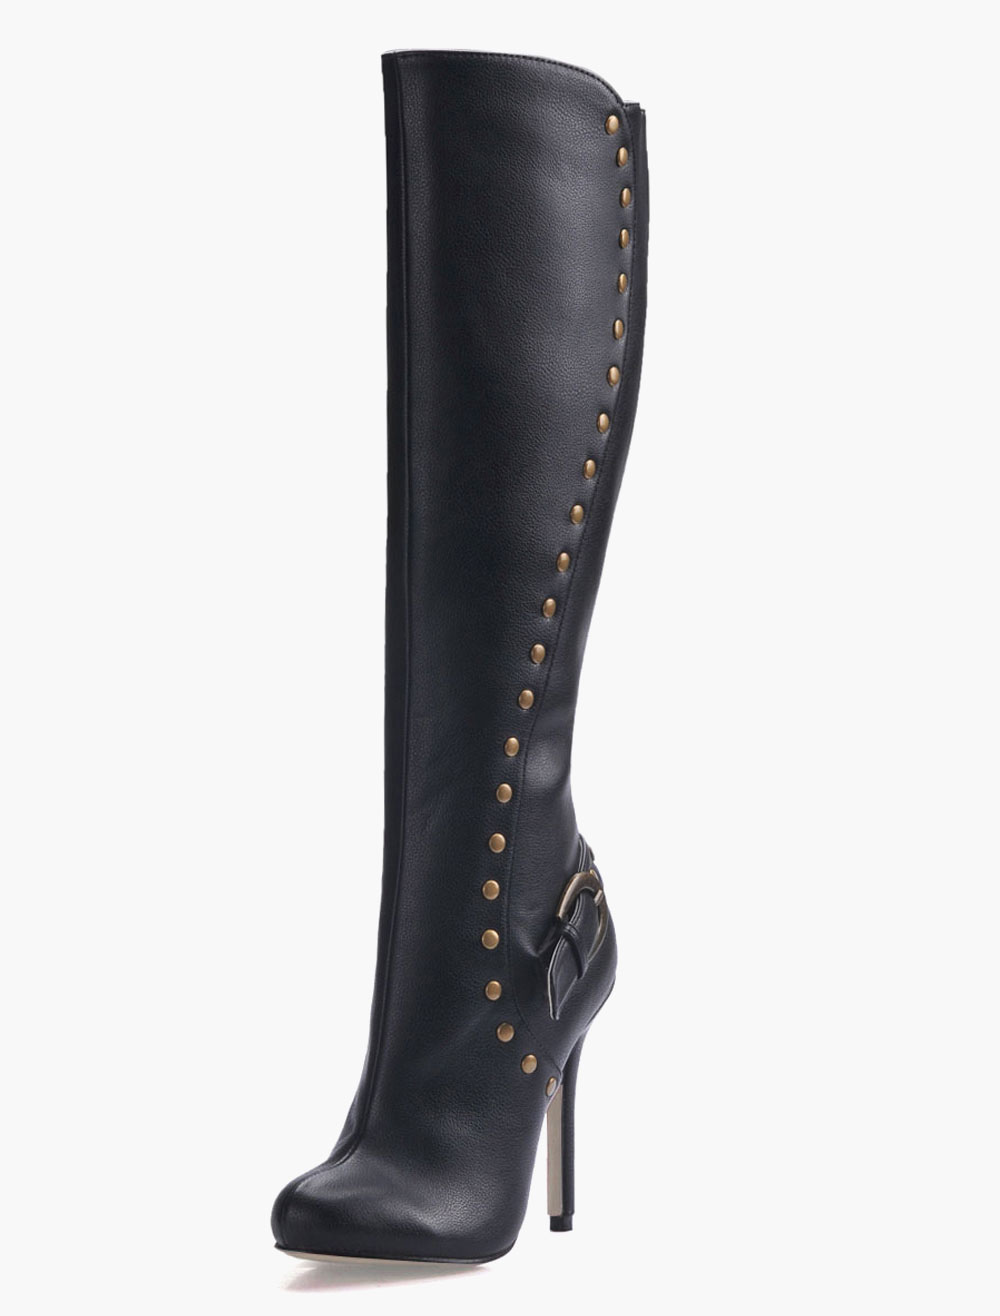 Black Pointed Toe Studded PU Leather Knee Length Boots for Women